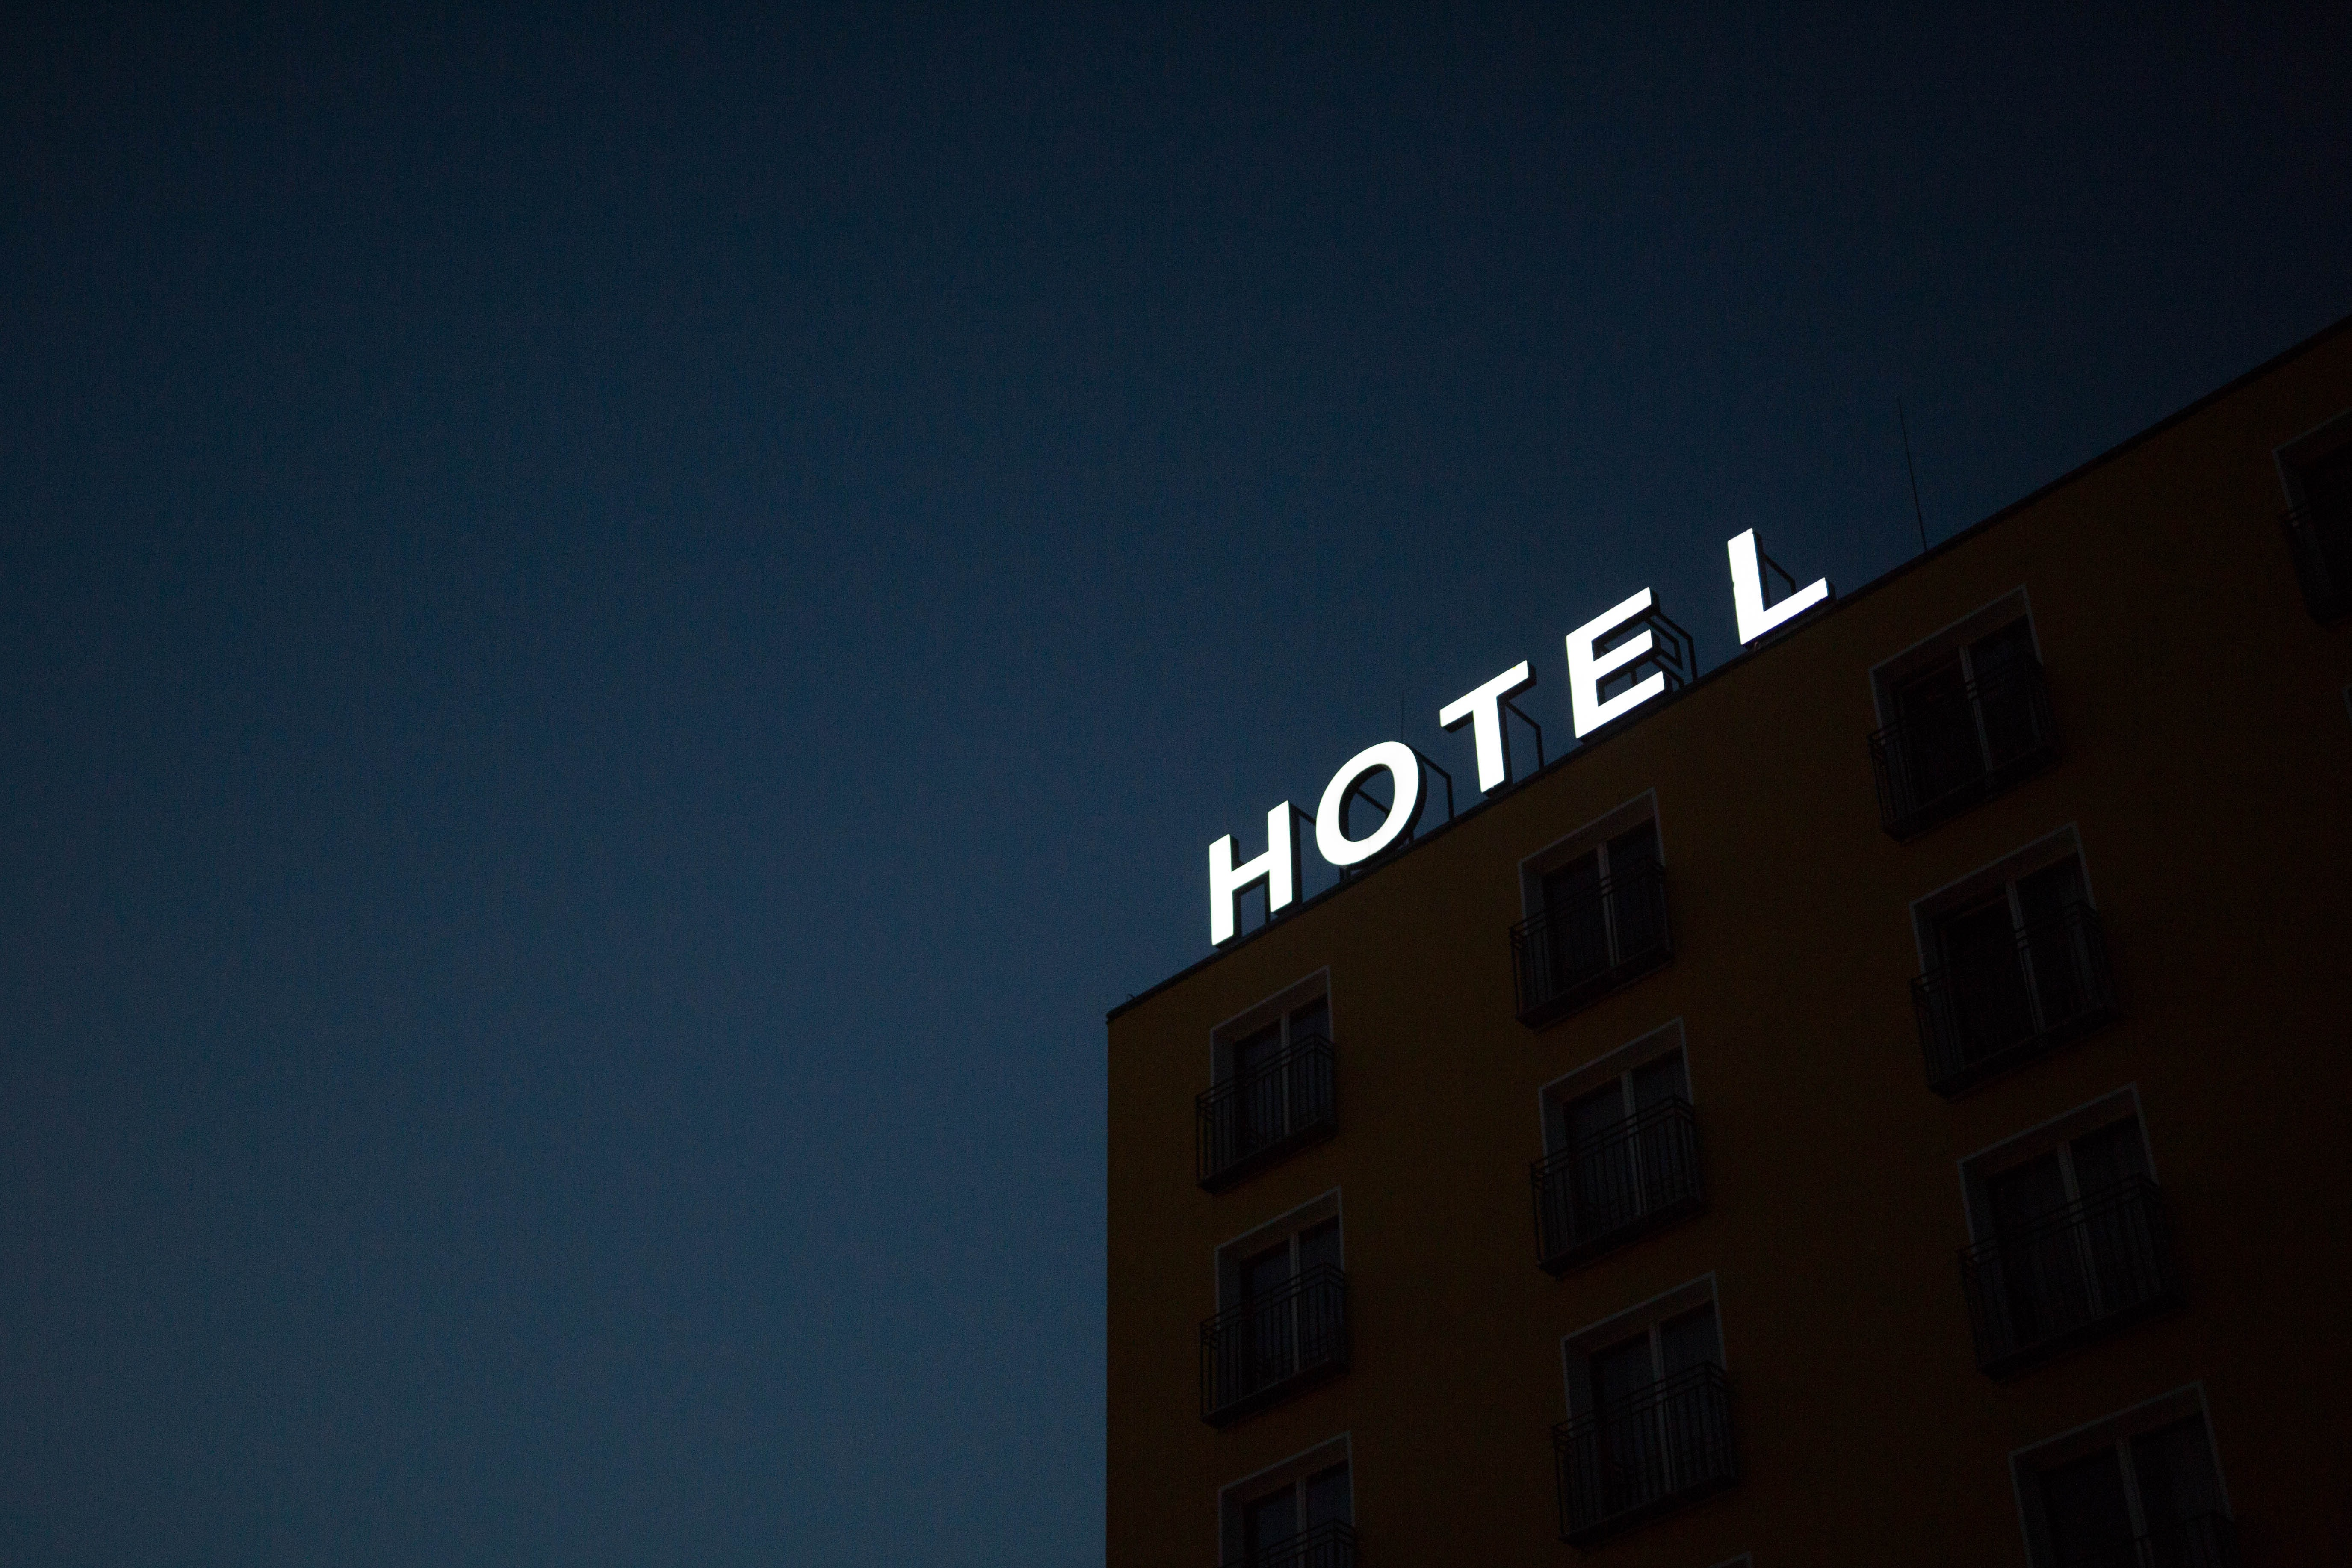 low-angle photo of Hotel lighted signage on top of brown building during nighttime